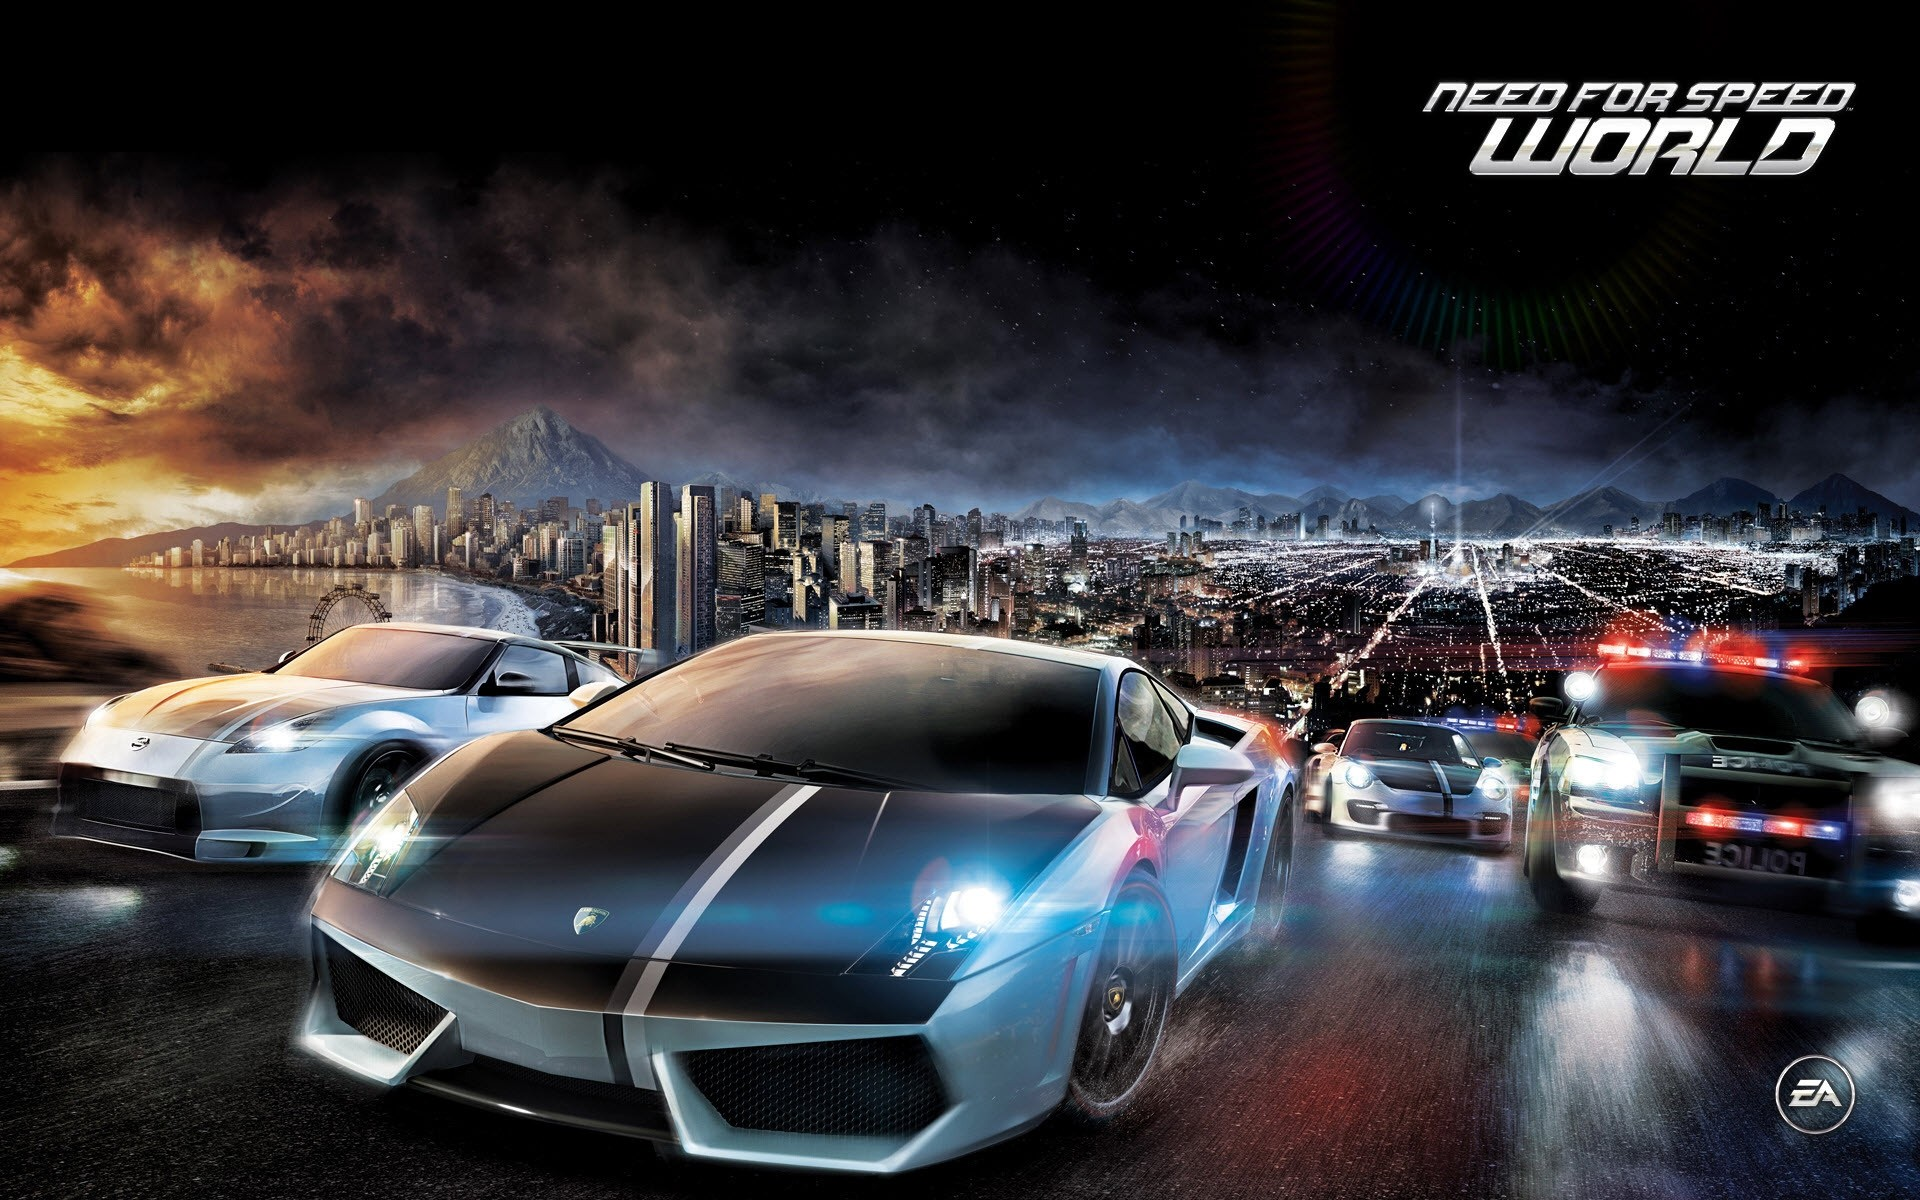 need for speed car transportation system vehicle road fast hurry speed travel traffic blur street action asphalt